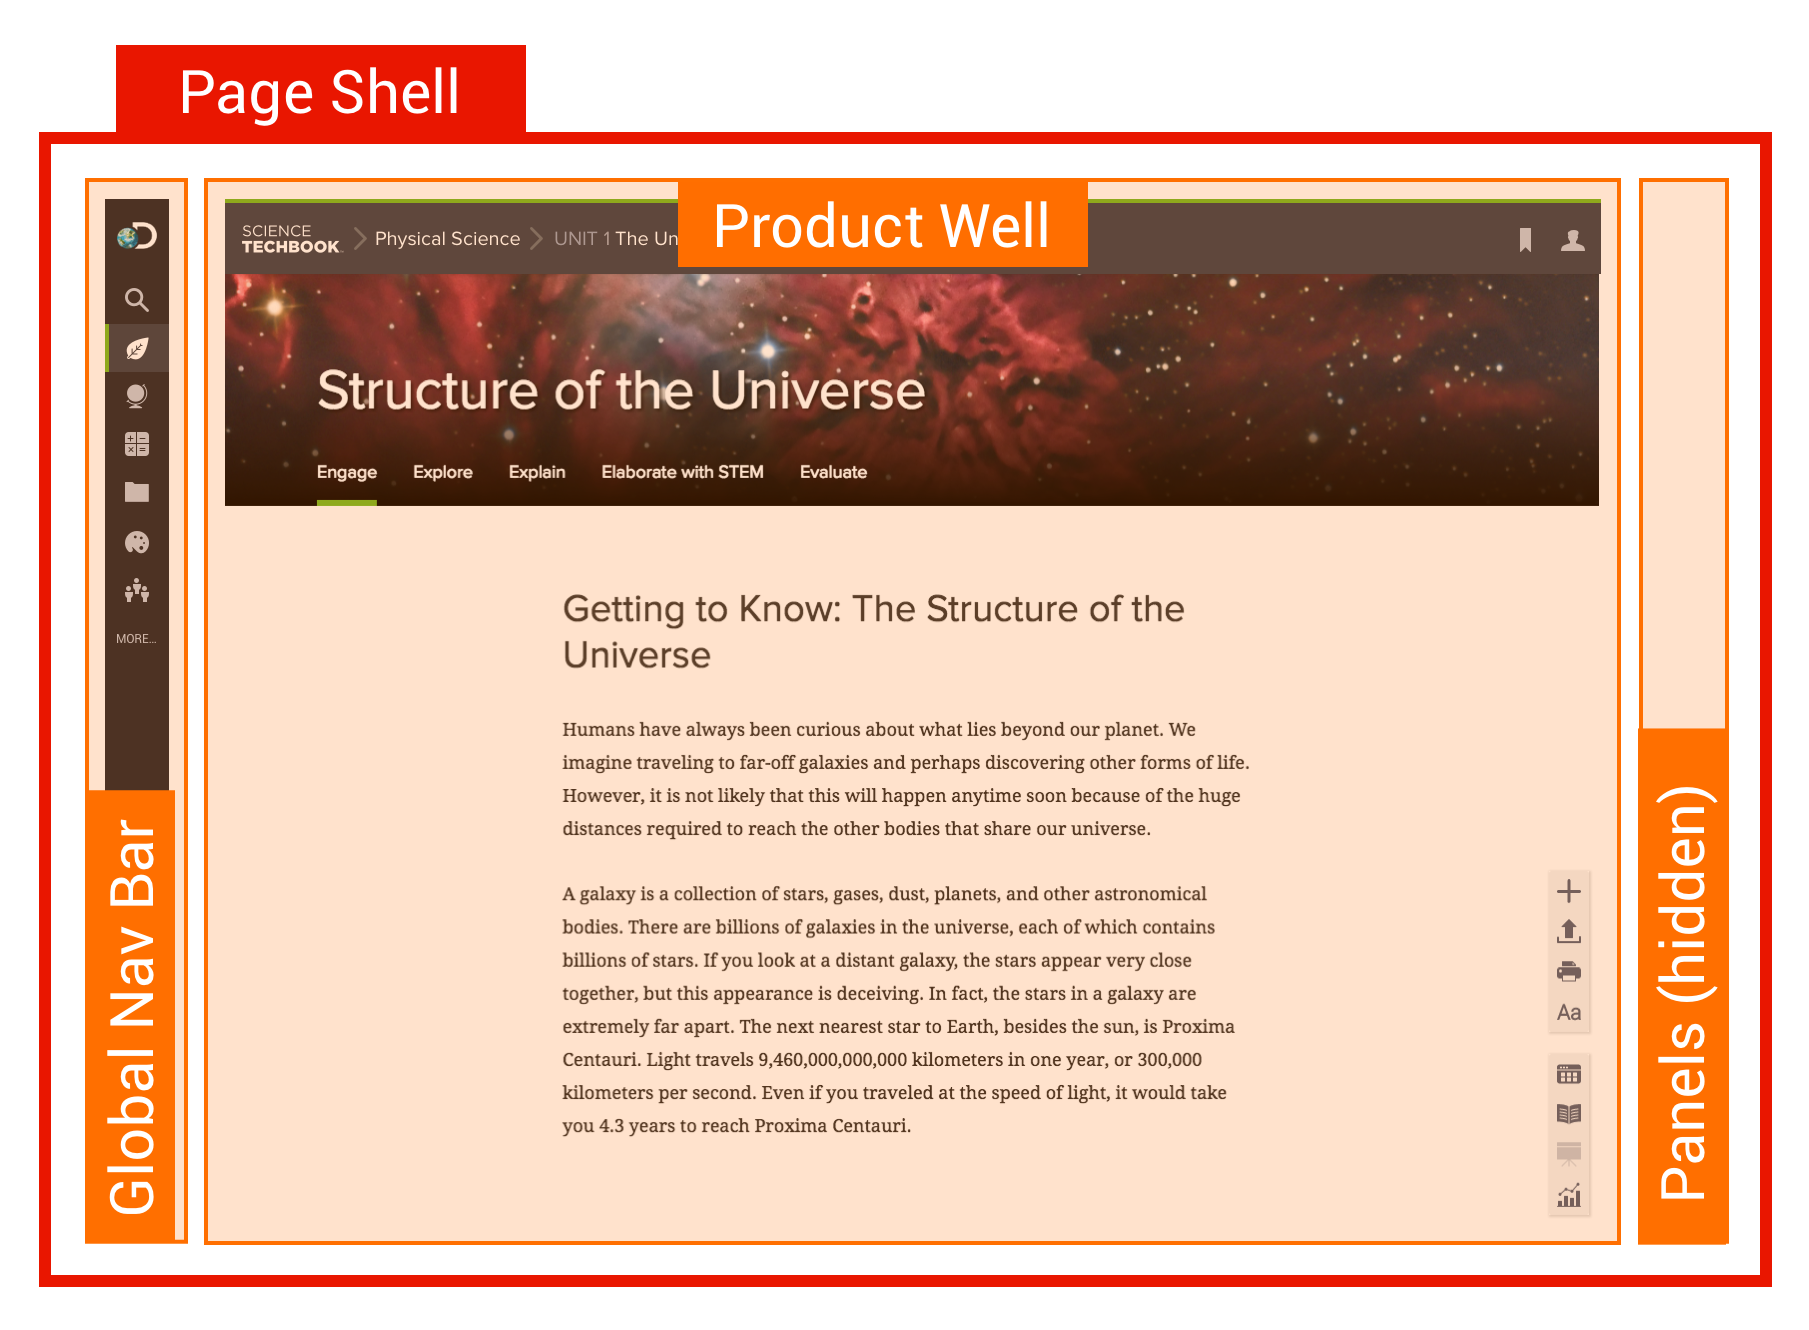 page shell